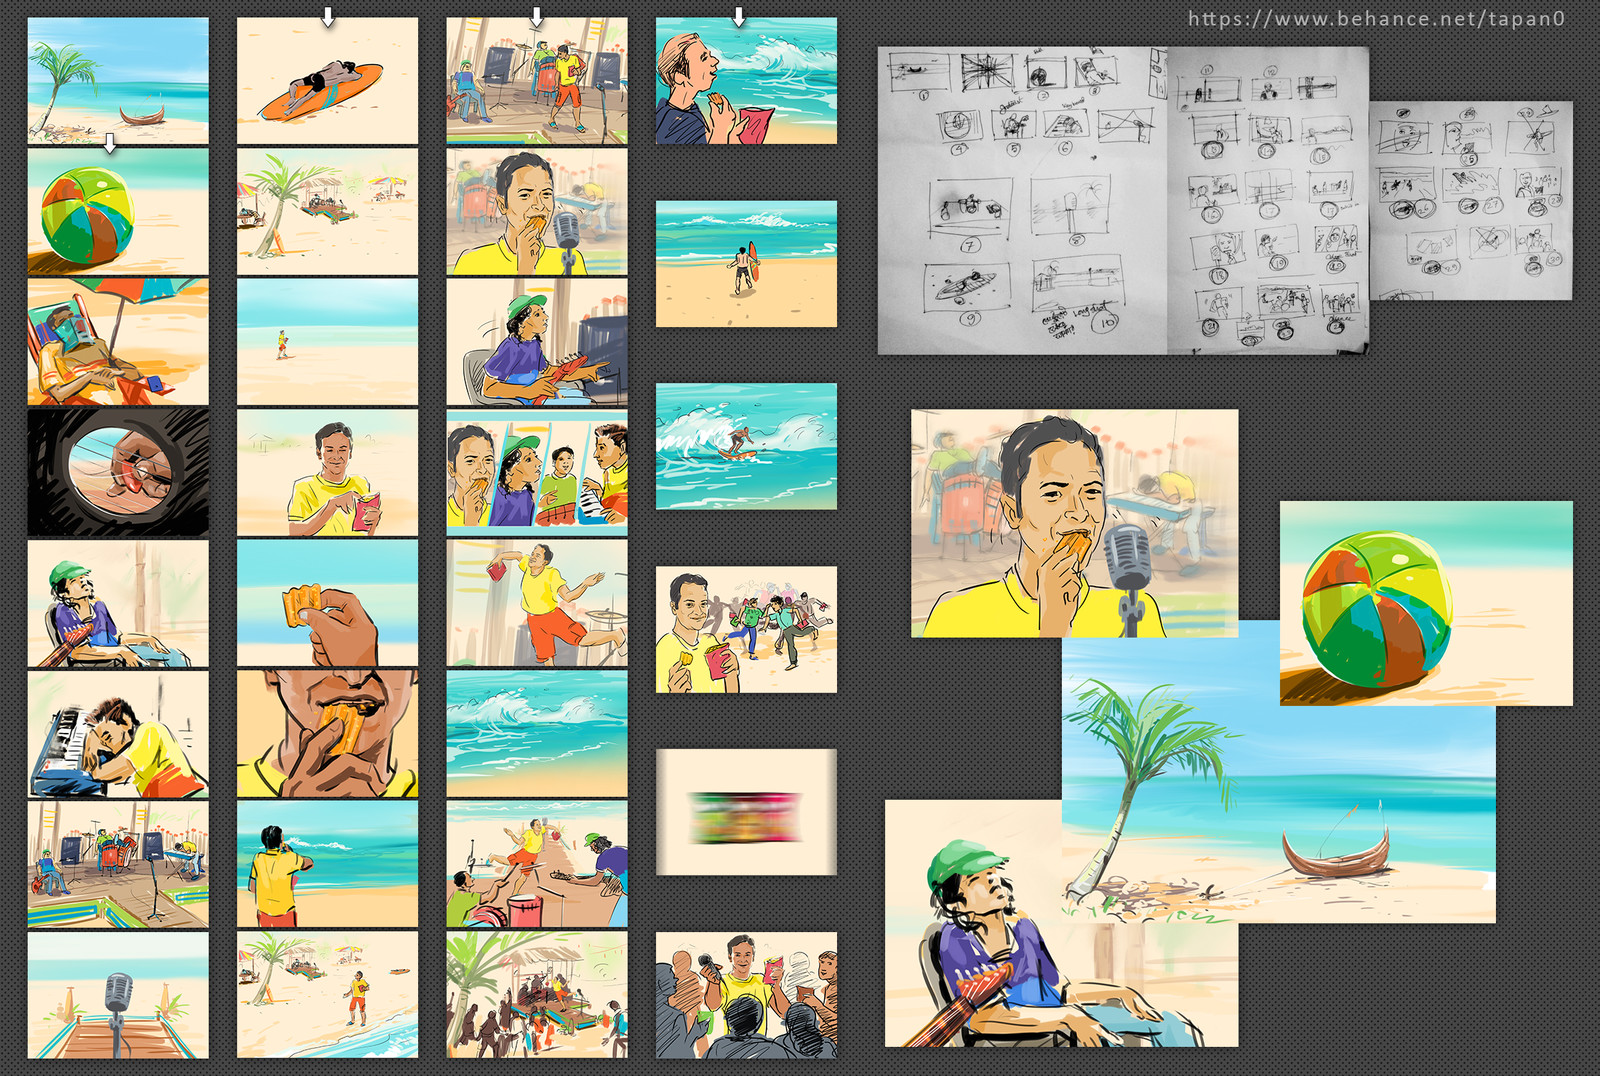 Storyboard sketch for TVC, Commissioned by film maker Mahathir Spondon